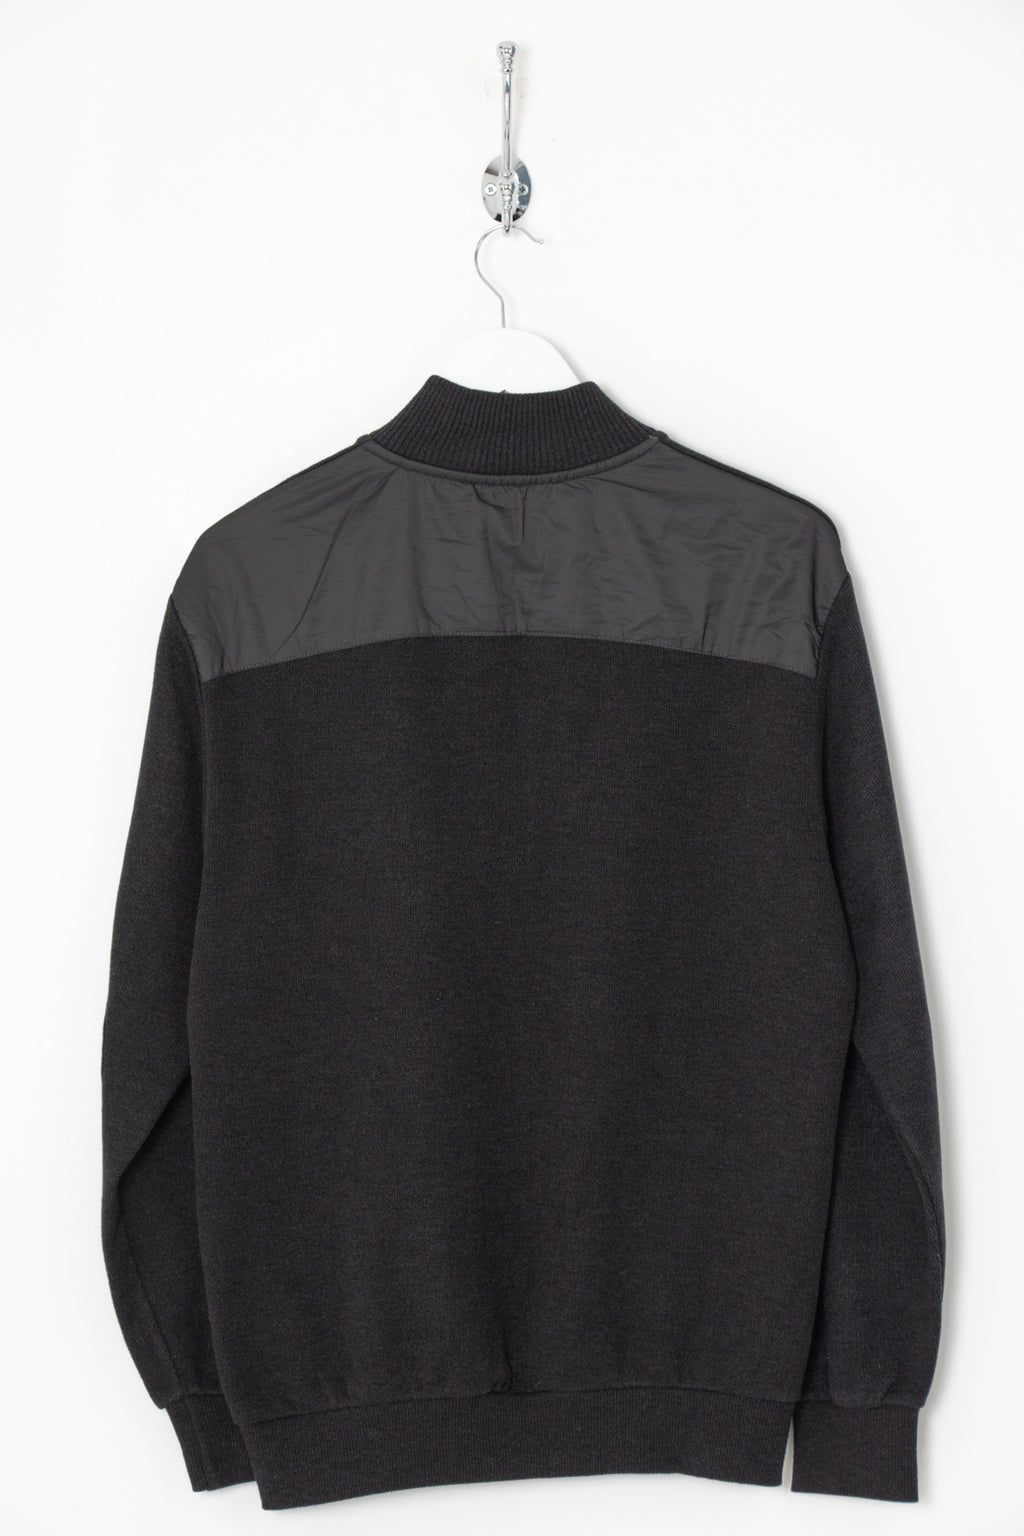 Burberry 1/4 Zip Sweatshirt (L)